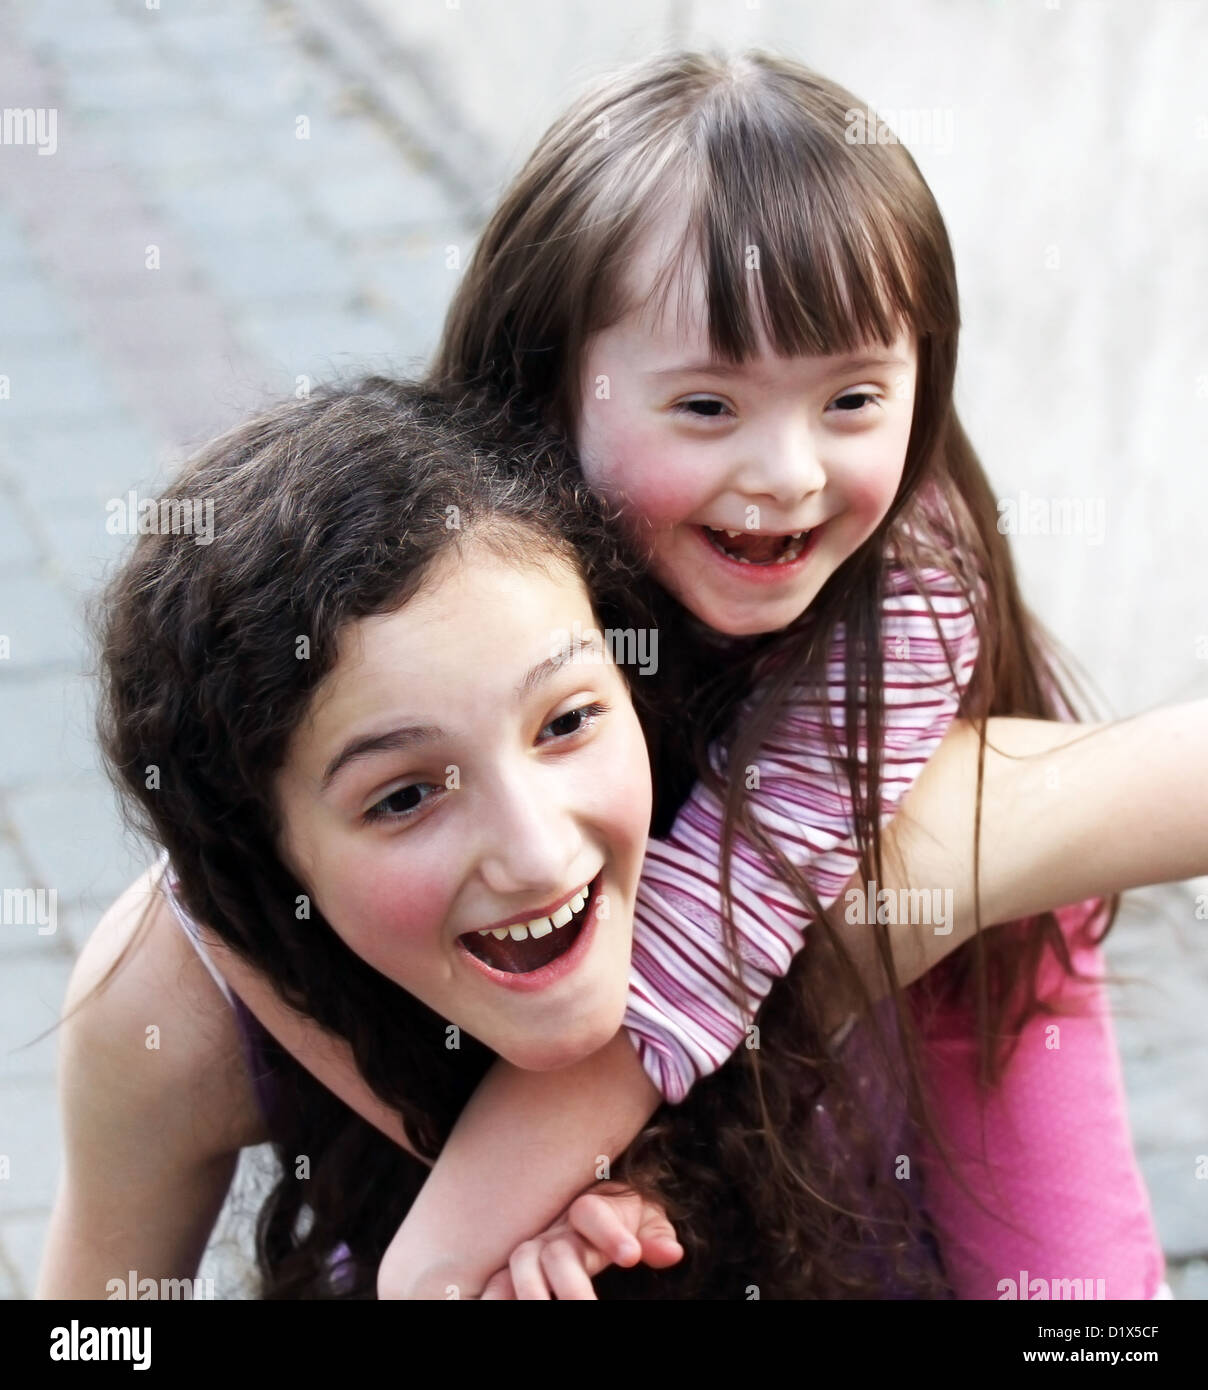 Portrait of beautiful young girls outside - Stock Image